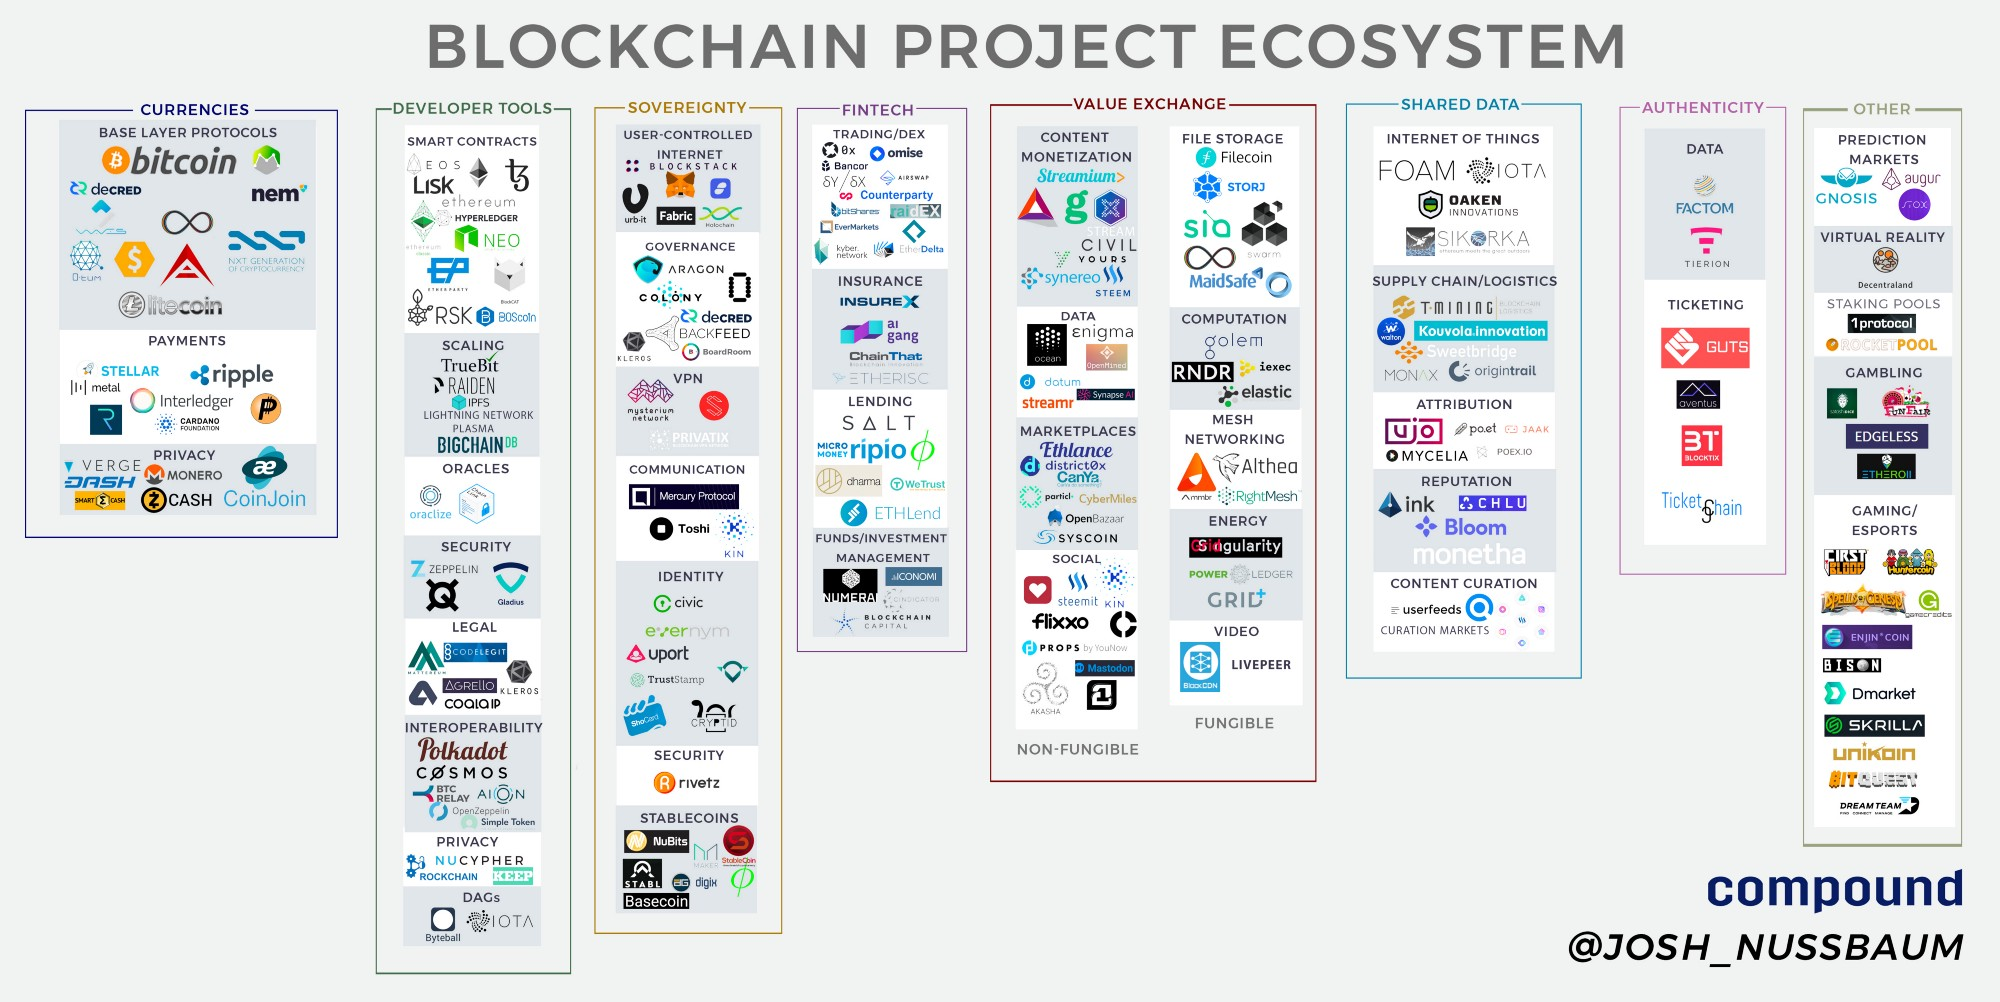 Blockchain Project Ecosystem.jpeg